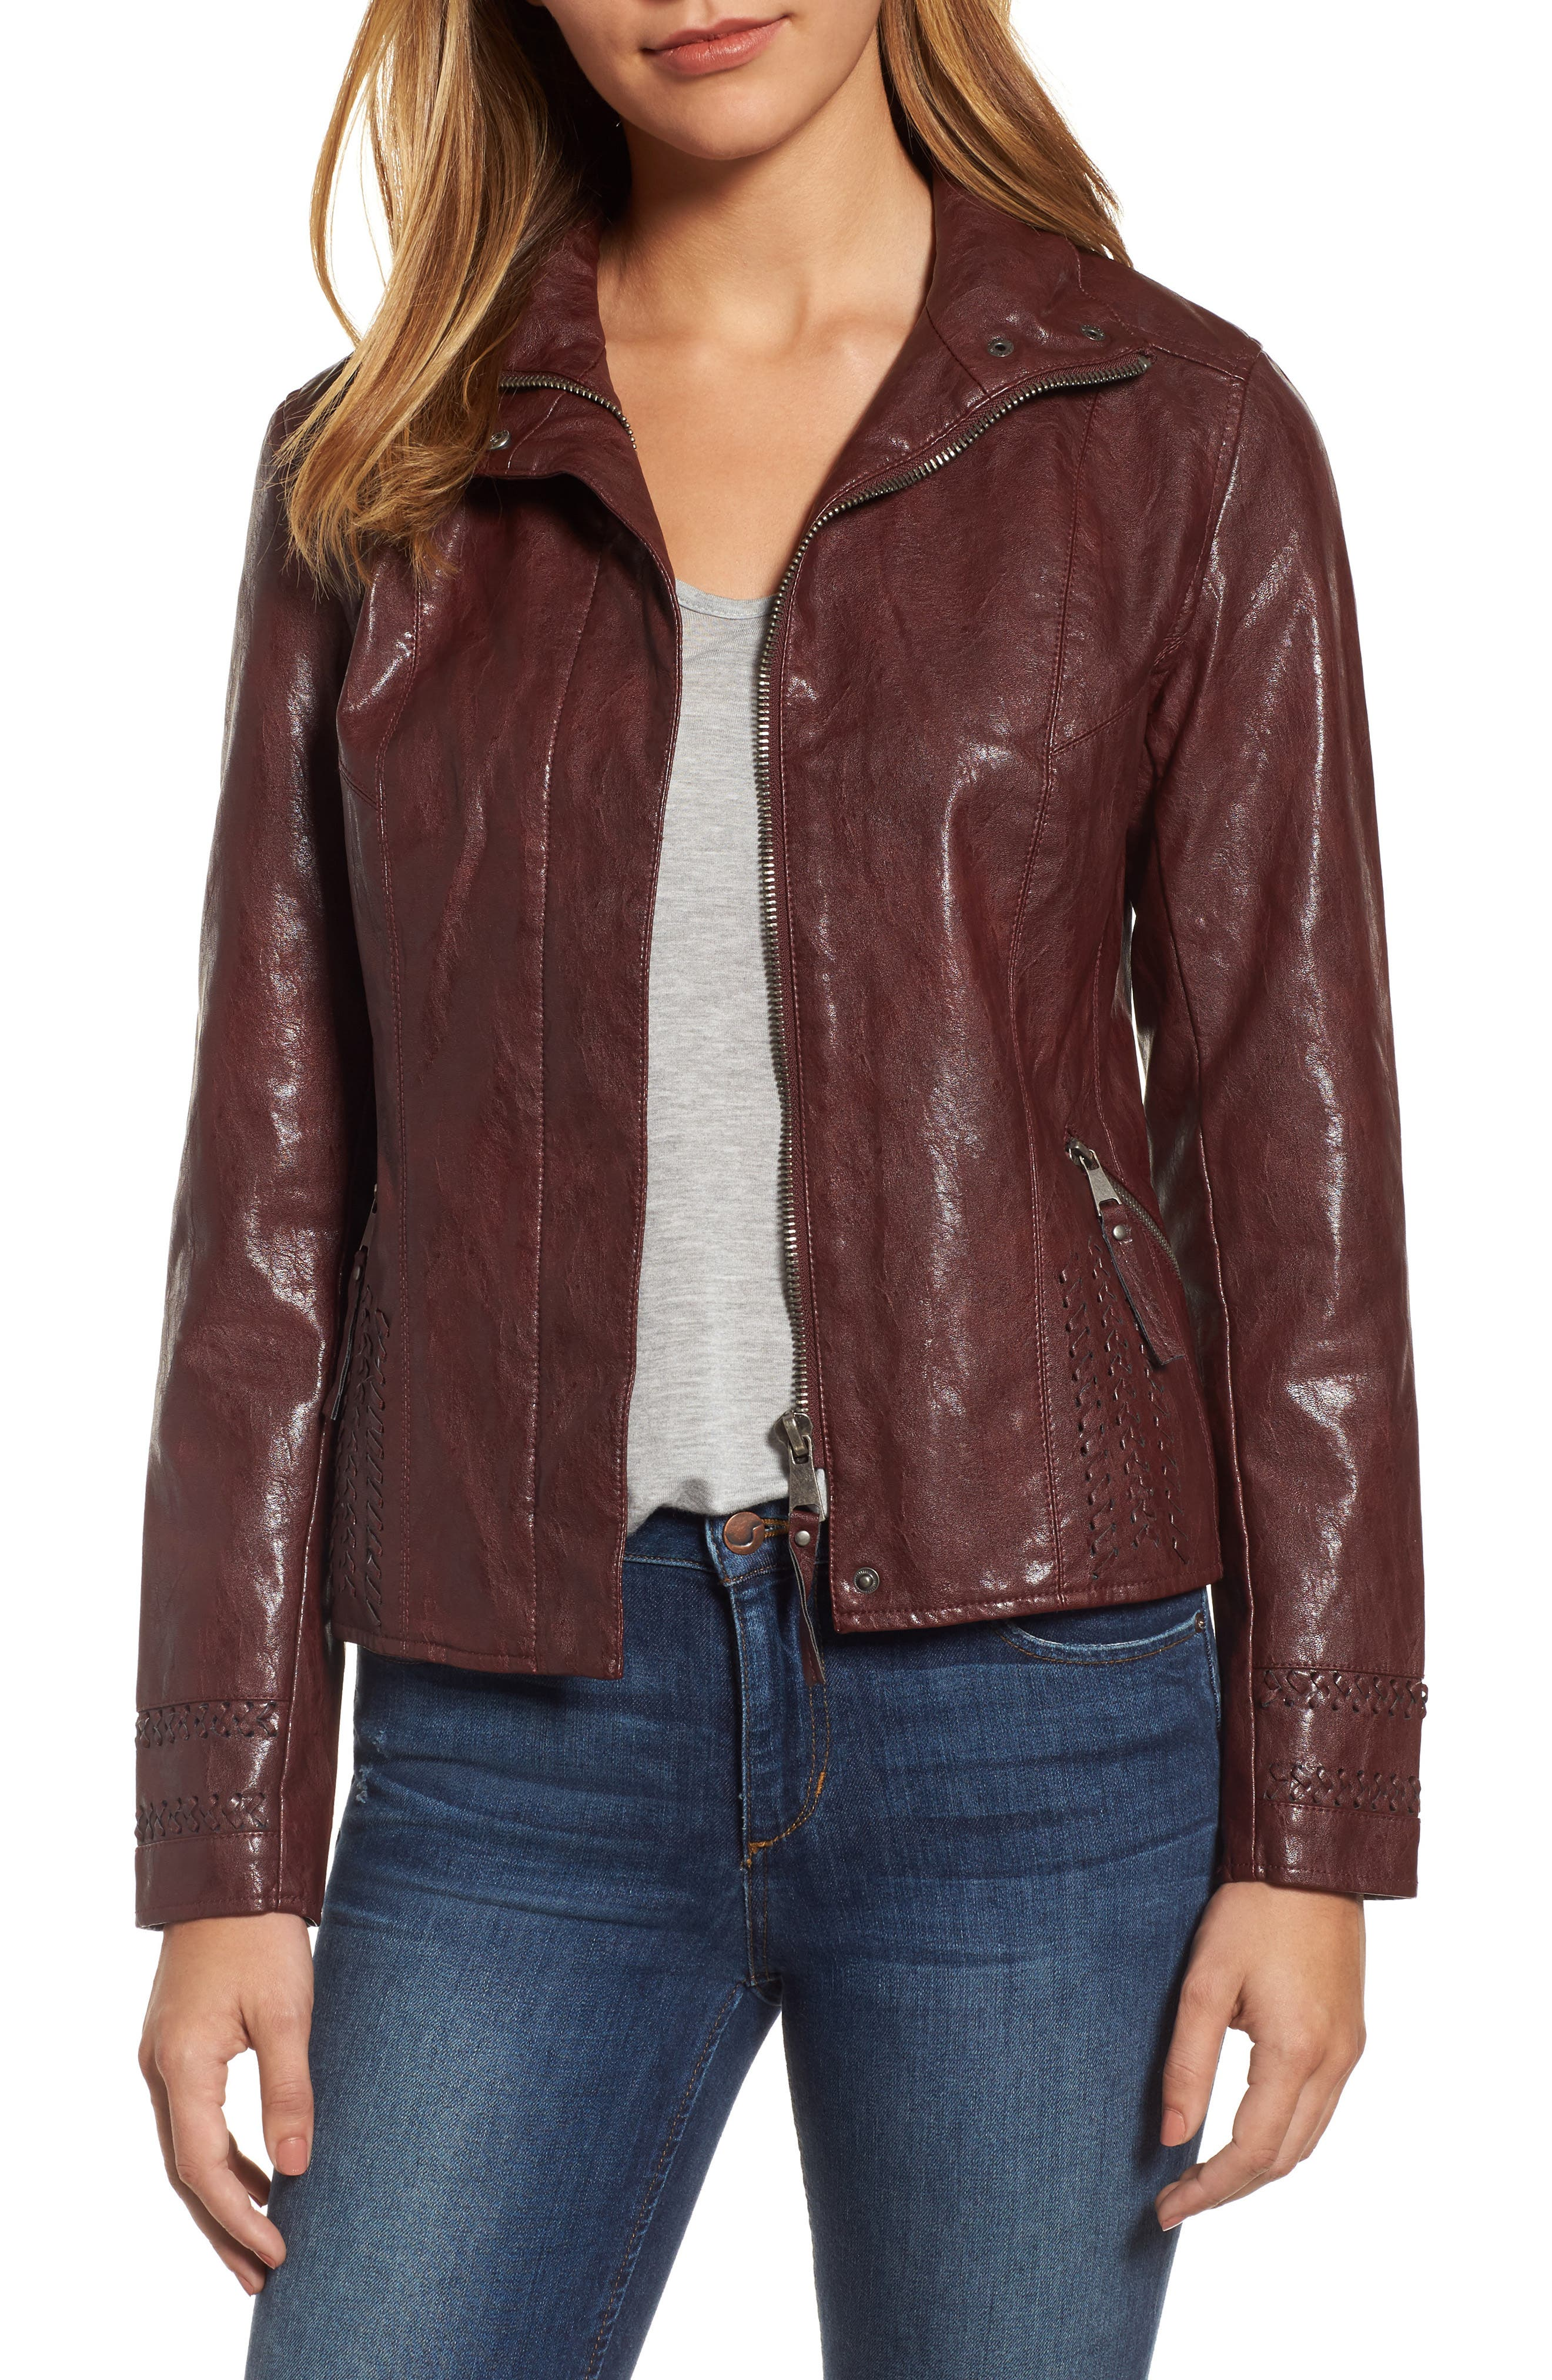 Main Image - KUT from the Kloth Brittney Faux Leather Jacket